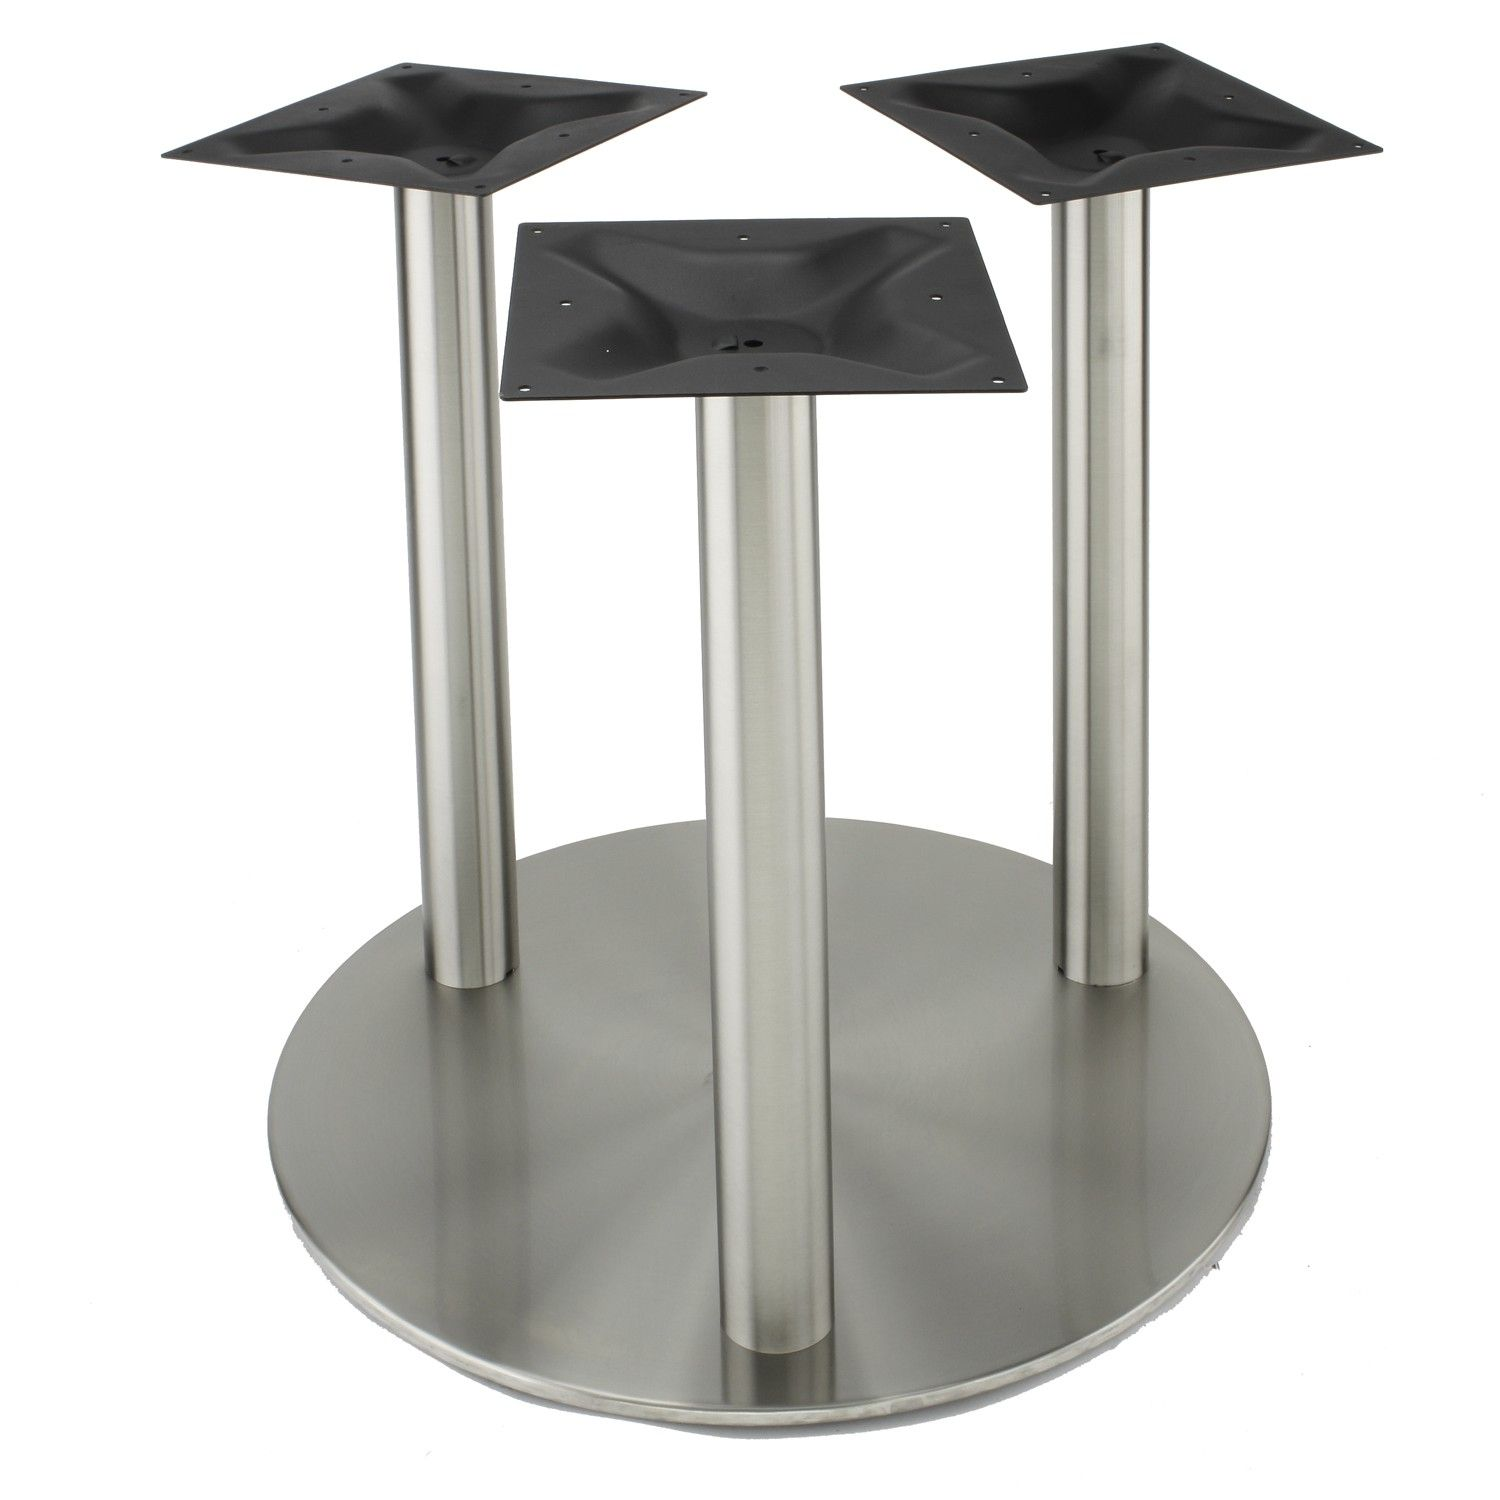 The Table Base Features:  Three, Steel Mounting Plates Thick) Spread At The  Floor  Compatibility With Tops Up To  Works With Our Optional Glass Top  Adapters